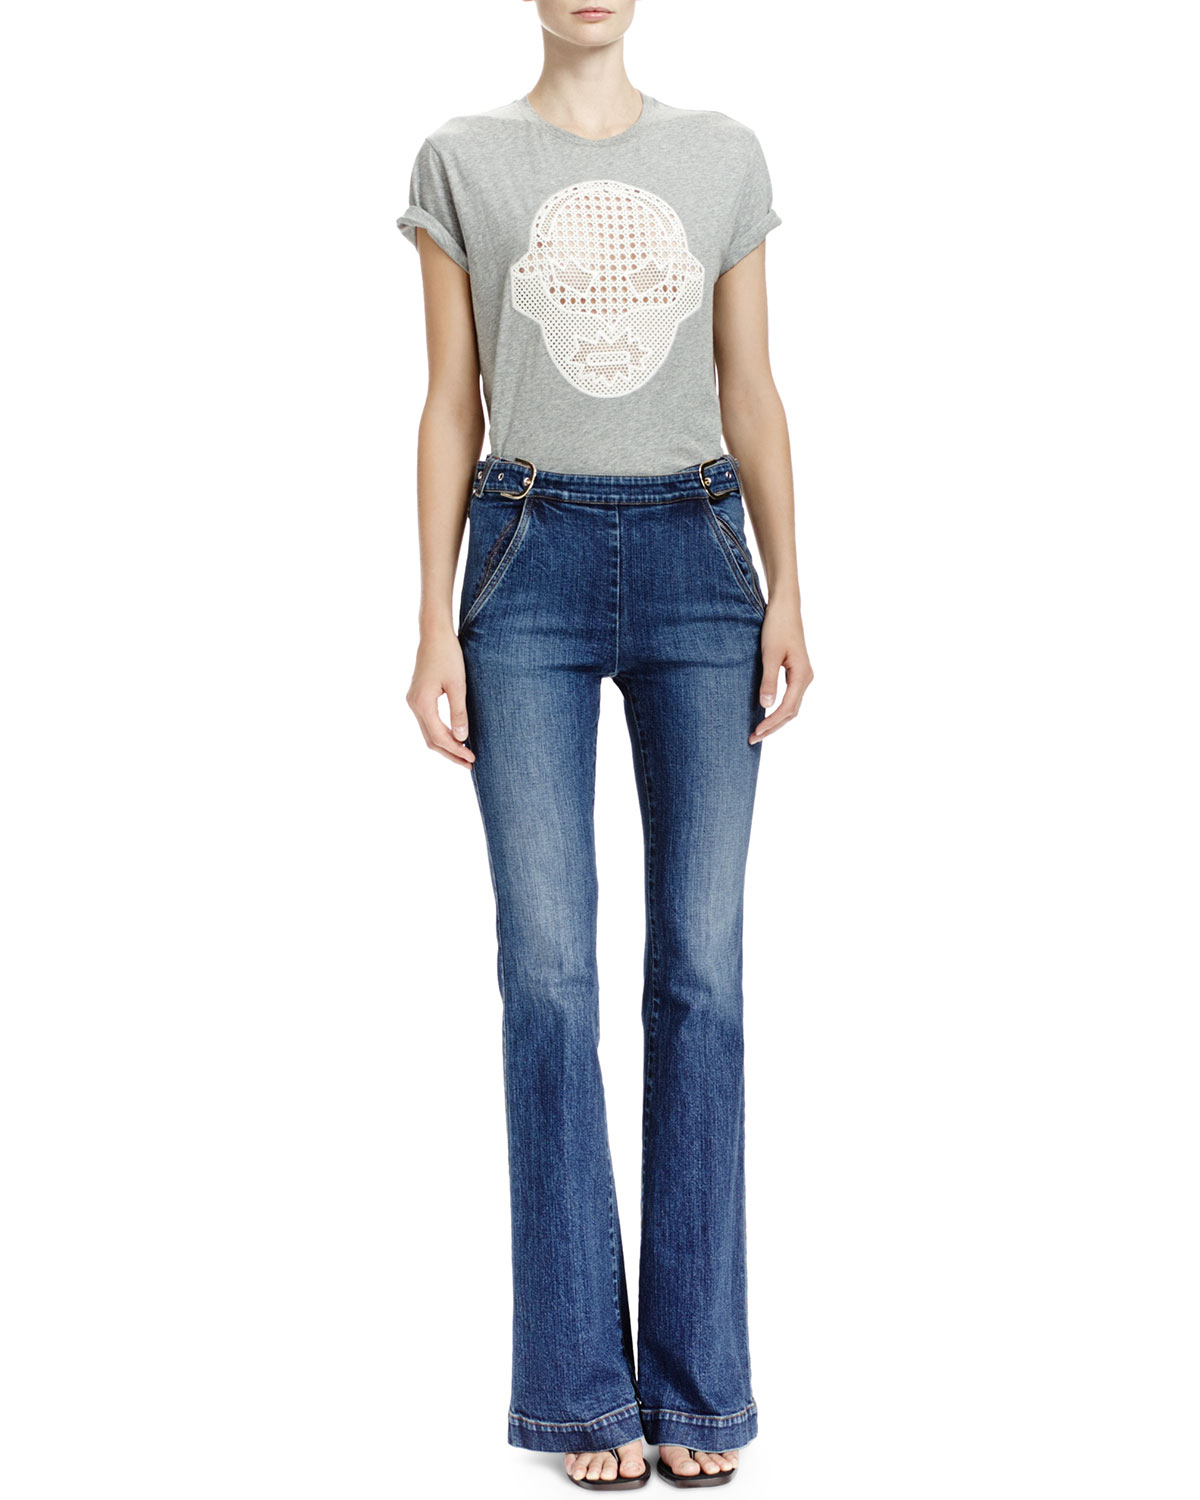 Stella mccartney Flare-leg Jeans With Side Buckles in Blue | Lyst